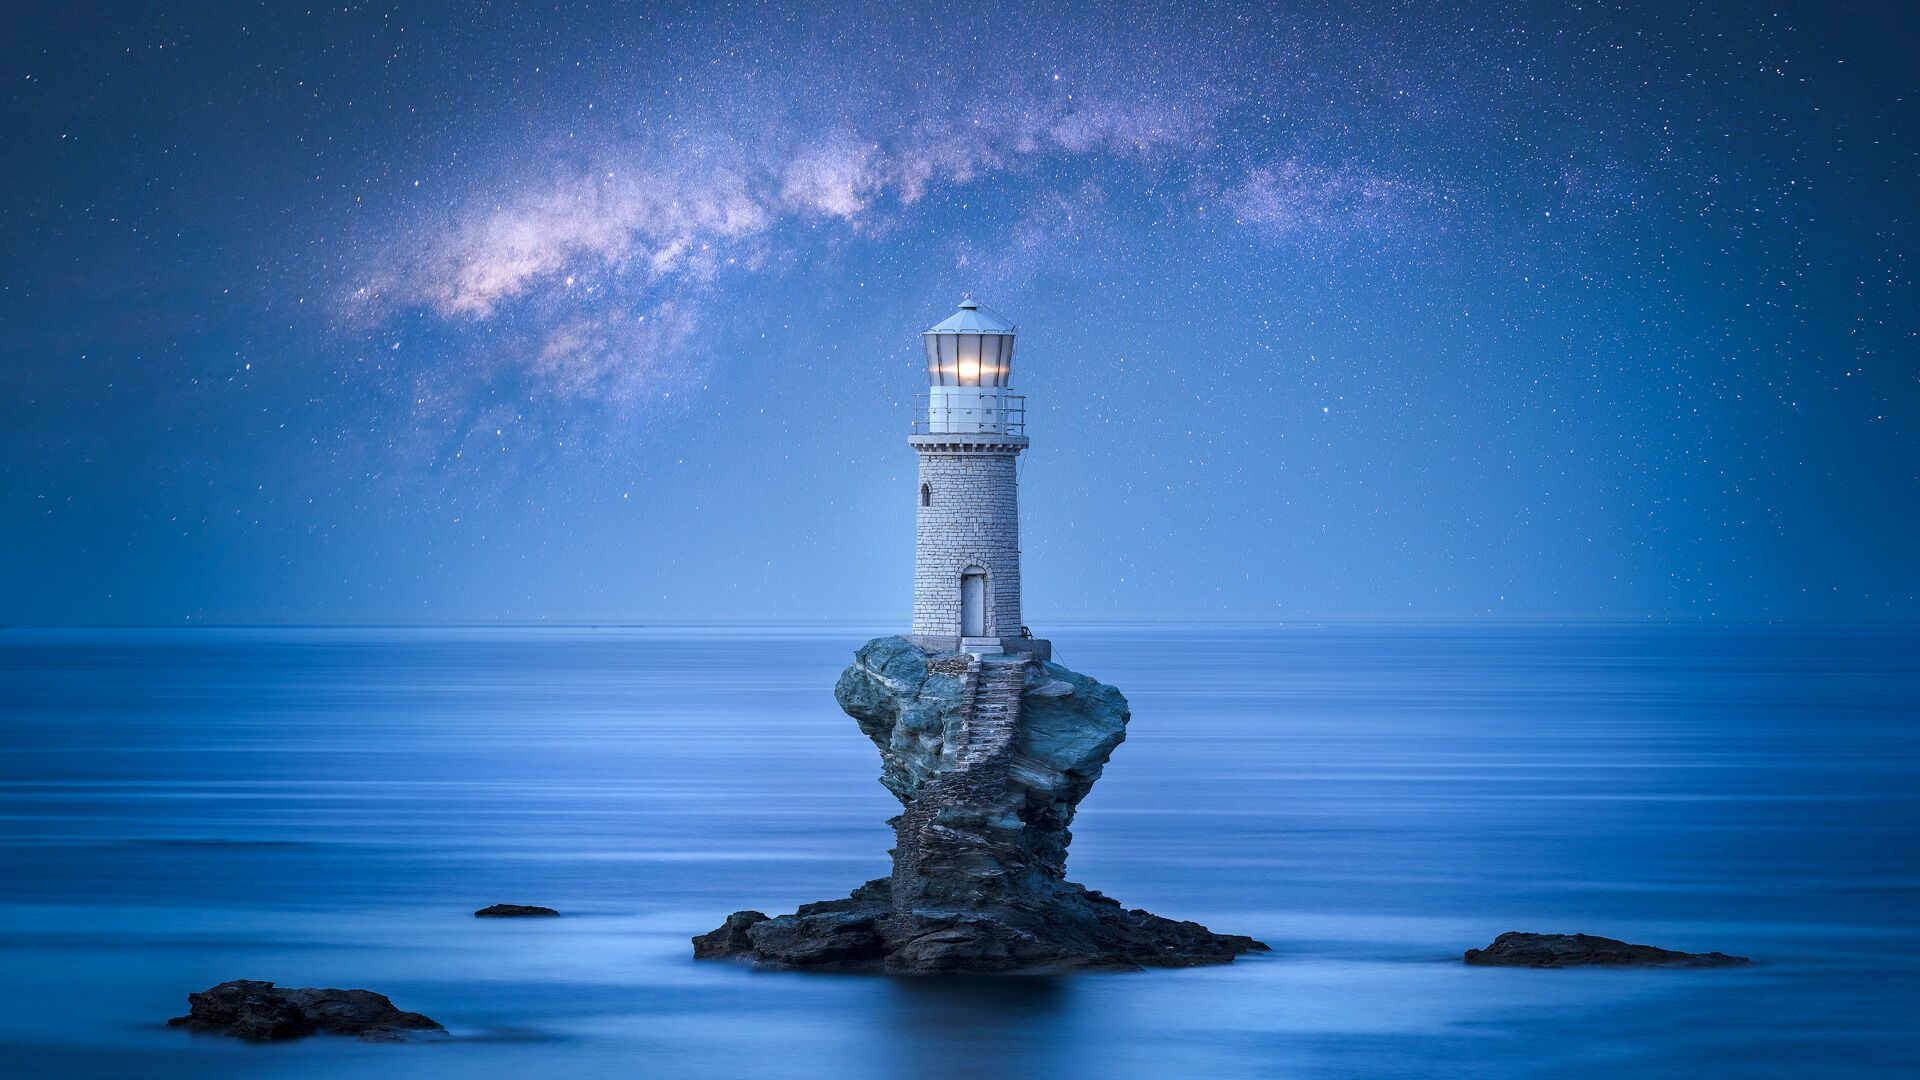 The Tourlitis Lighthouse off the coast of Hora is the only one in the Cyclades built on a rock in the middle of the sea